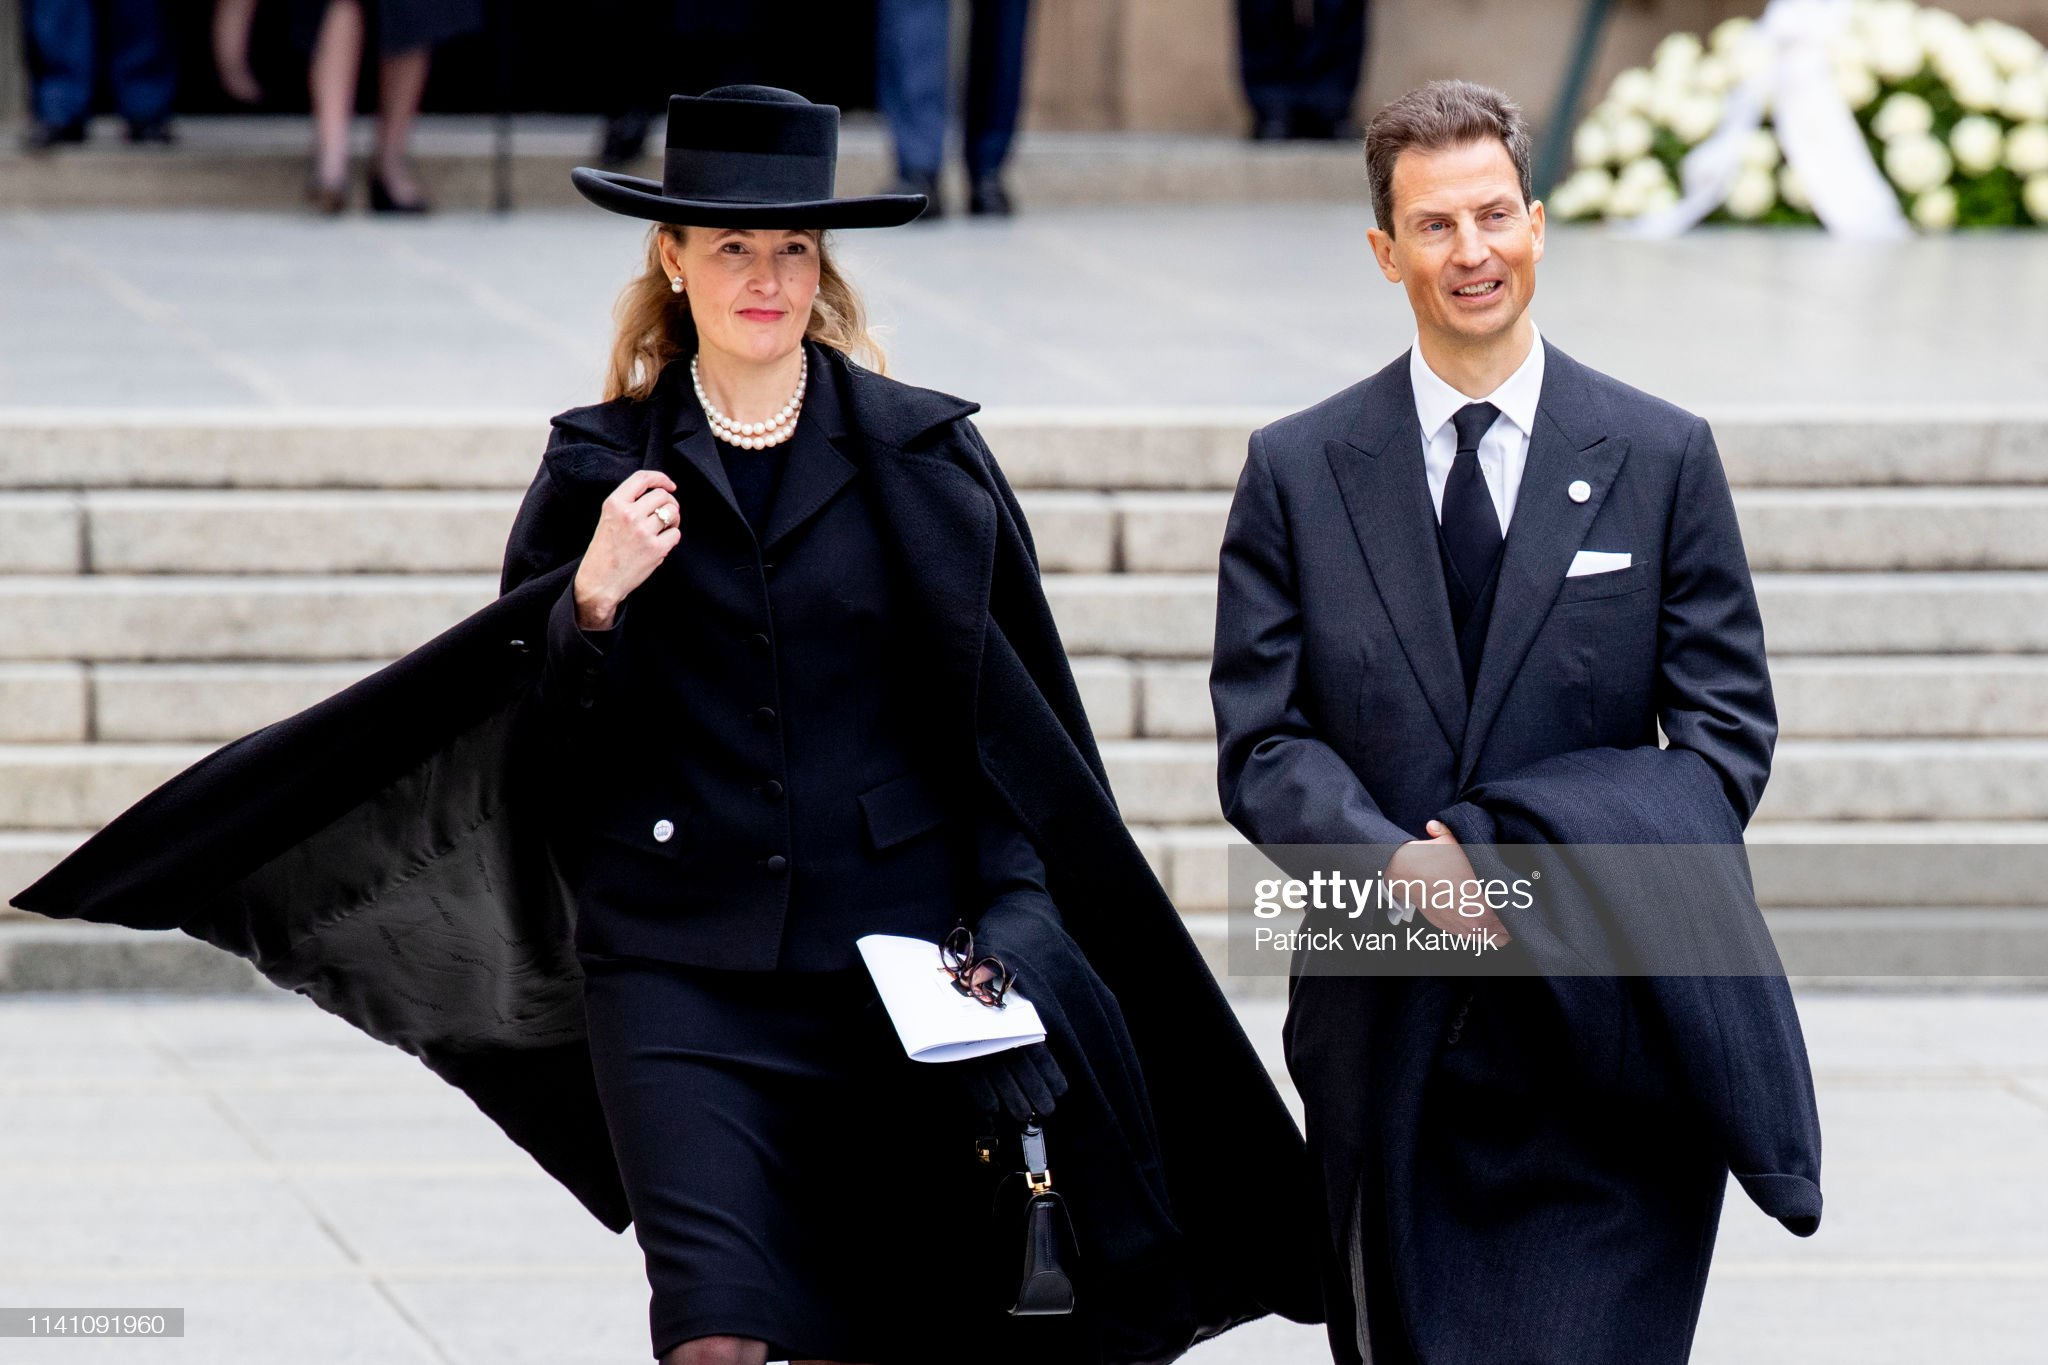 Похороны Великого Герцога Жана https://media.gettyimages.com/photos/prince-elois-of-liechtenstein-and-princess-sophie-of-liechtenstein-of-picture-id1141091960?s=2048x2048